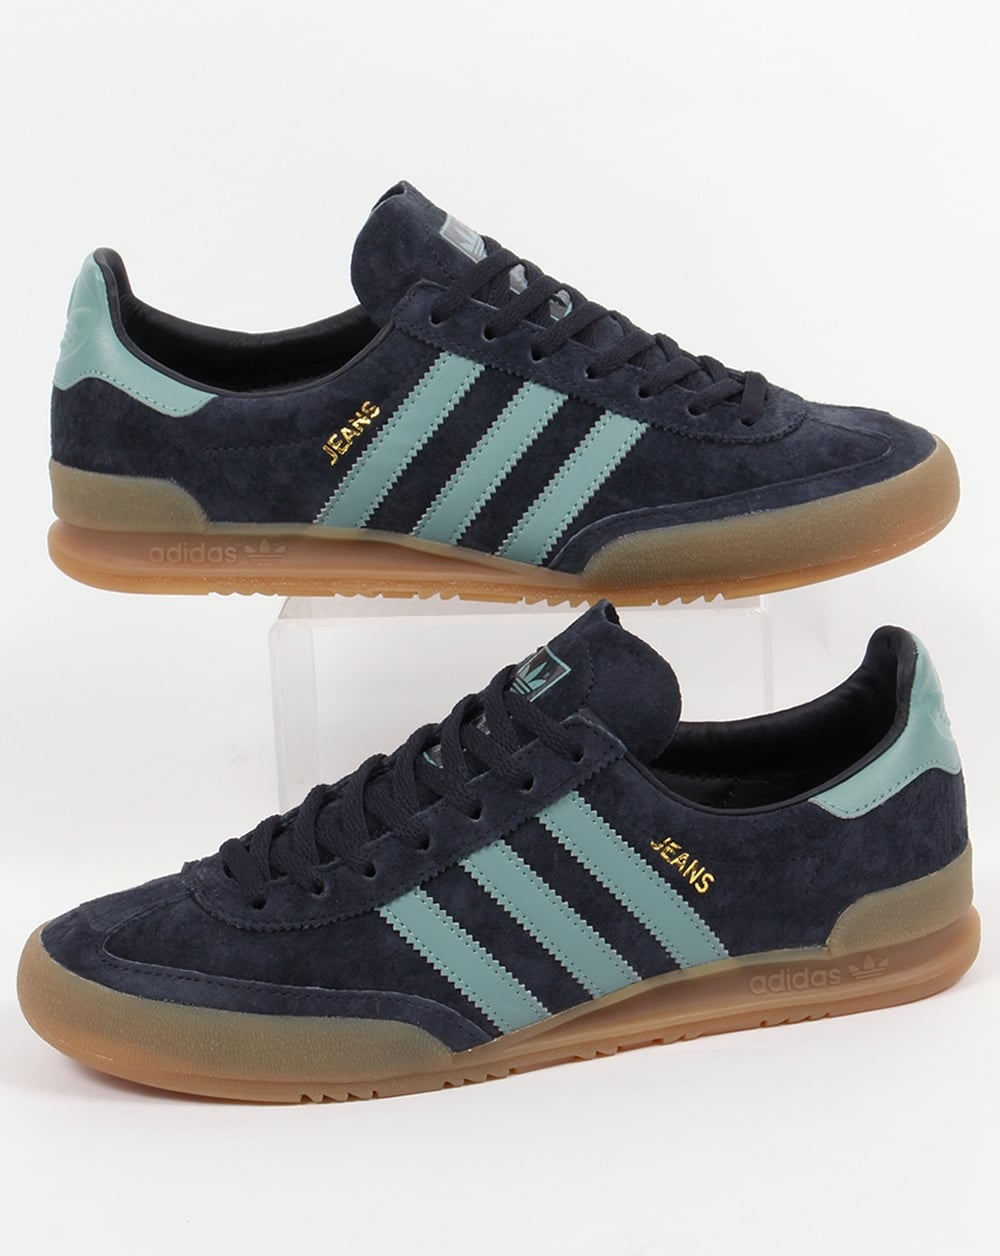 hot sale online 297ec c0392 adidas Trainers Adidas Jeans Trainers NavySky